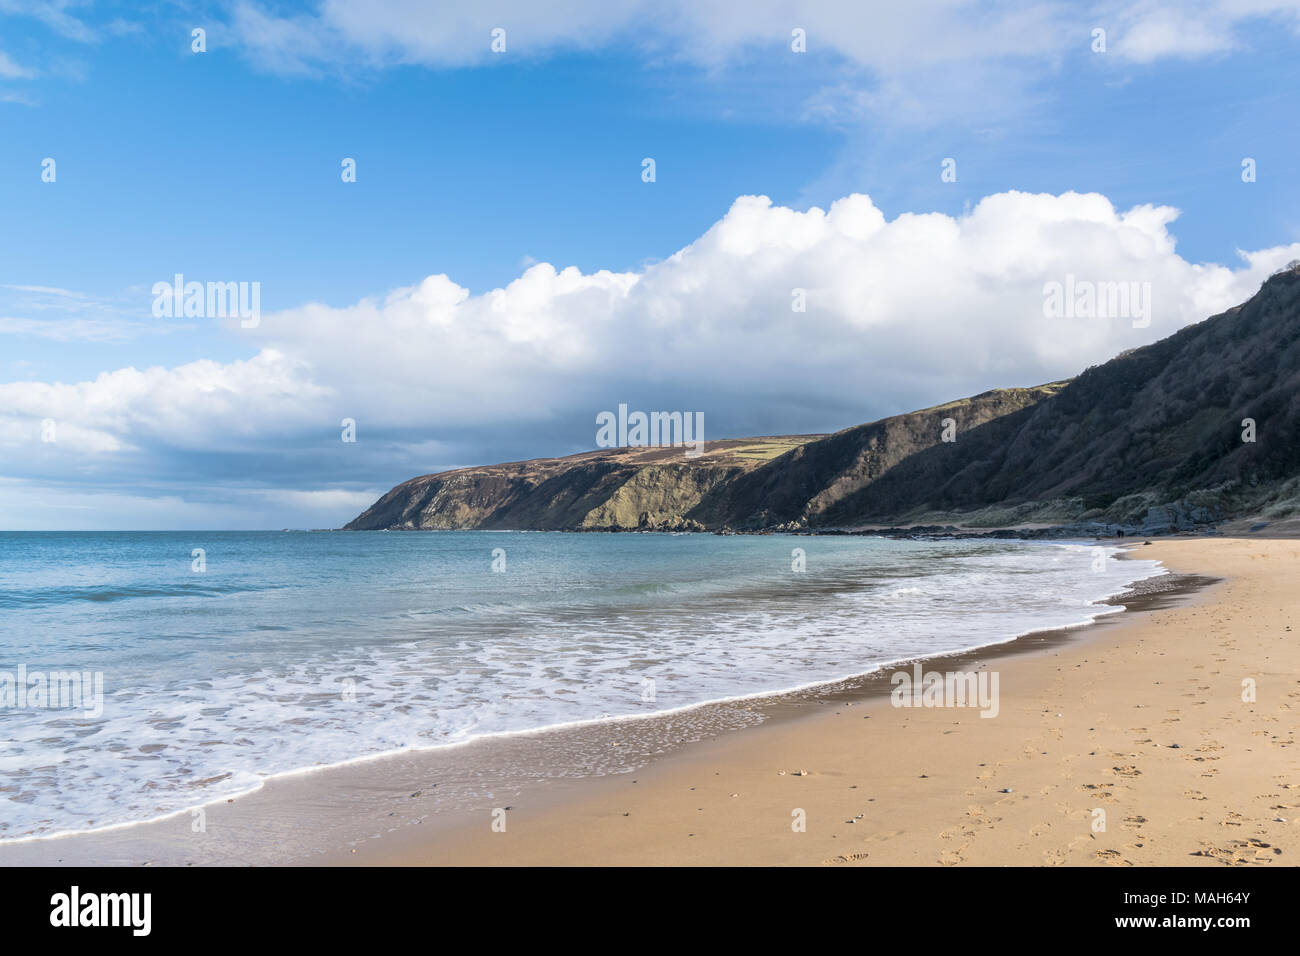 White sandy beach in Ireland with turquoise water and blue sky. This is Kinnagoe Bay in Donegal Ireland - Stock Image